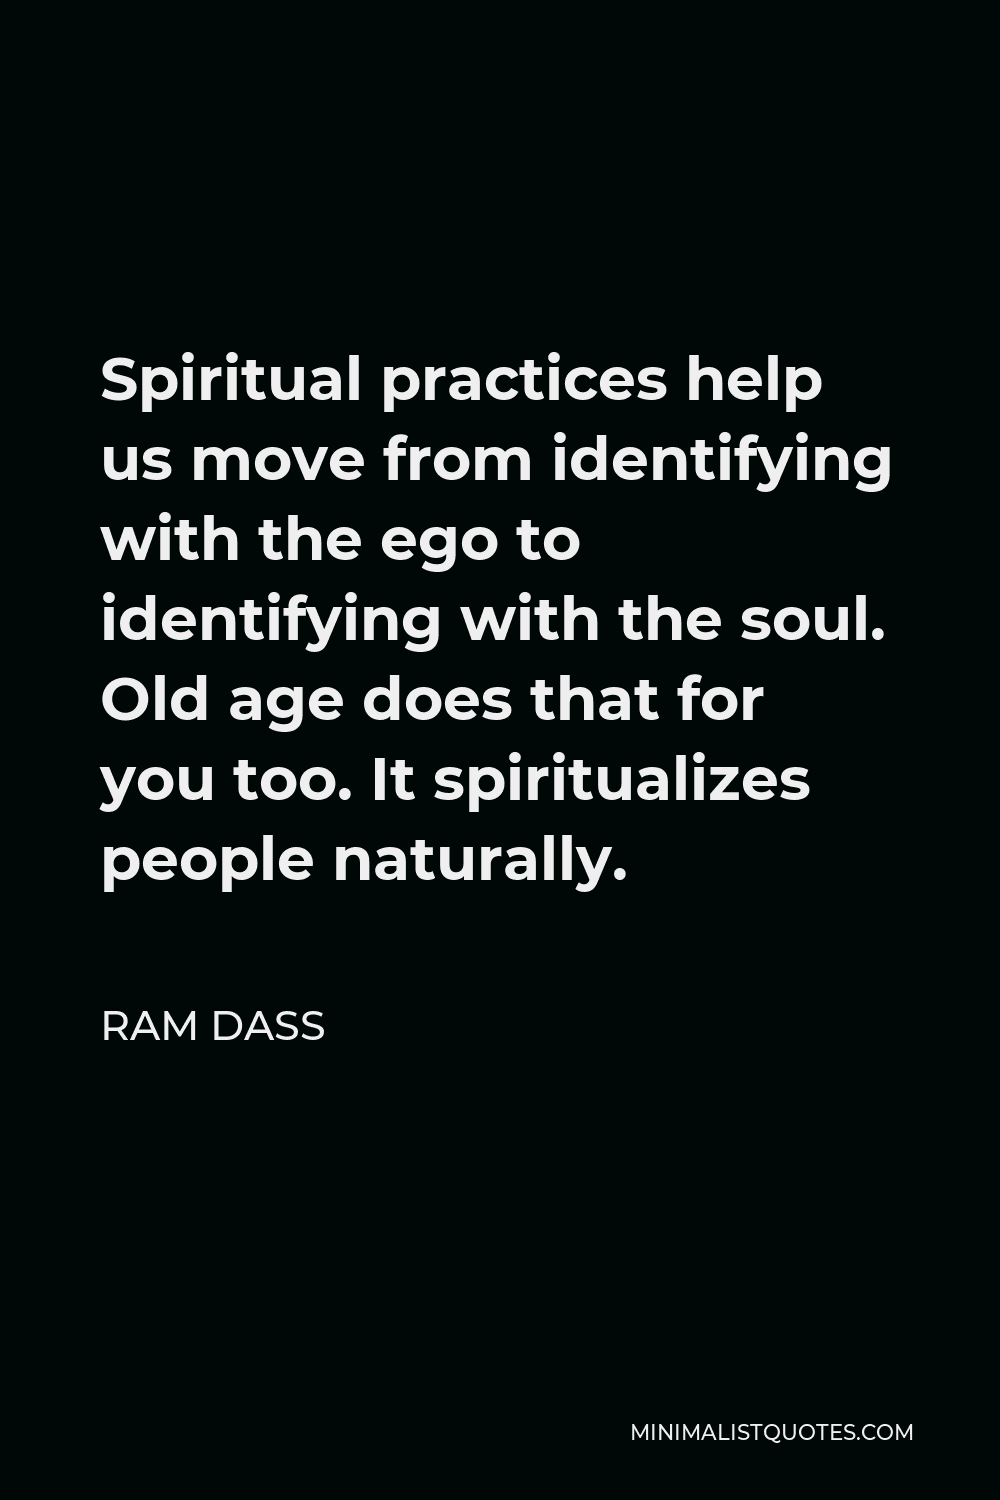 Ram Dass Quote - Spiritual practices help us move from identifying with the ego to identifying with the soul. Old age does that for you too. It spiritualizes people naturally.